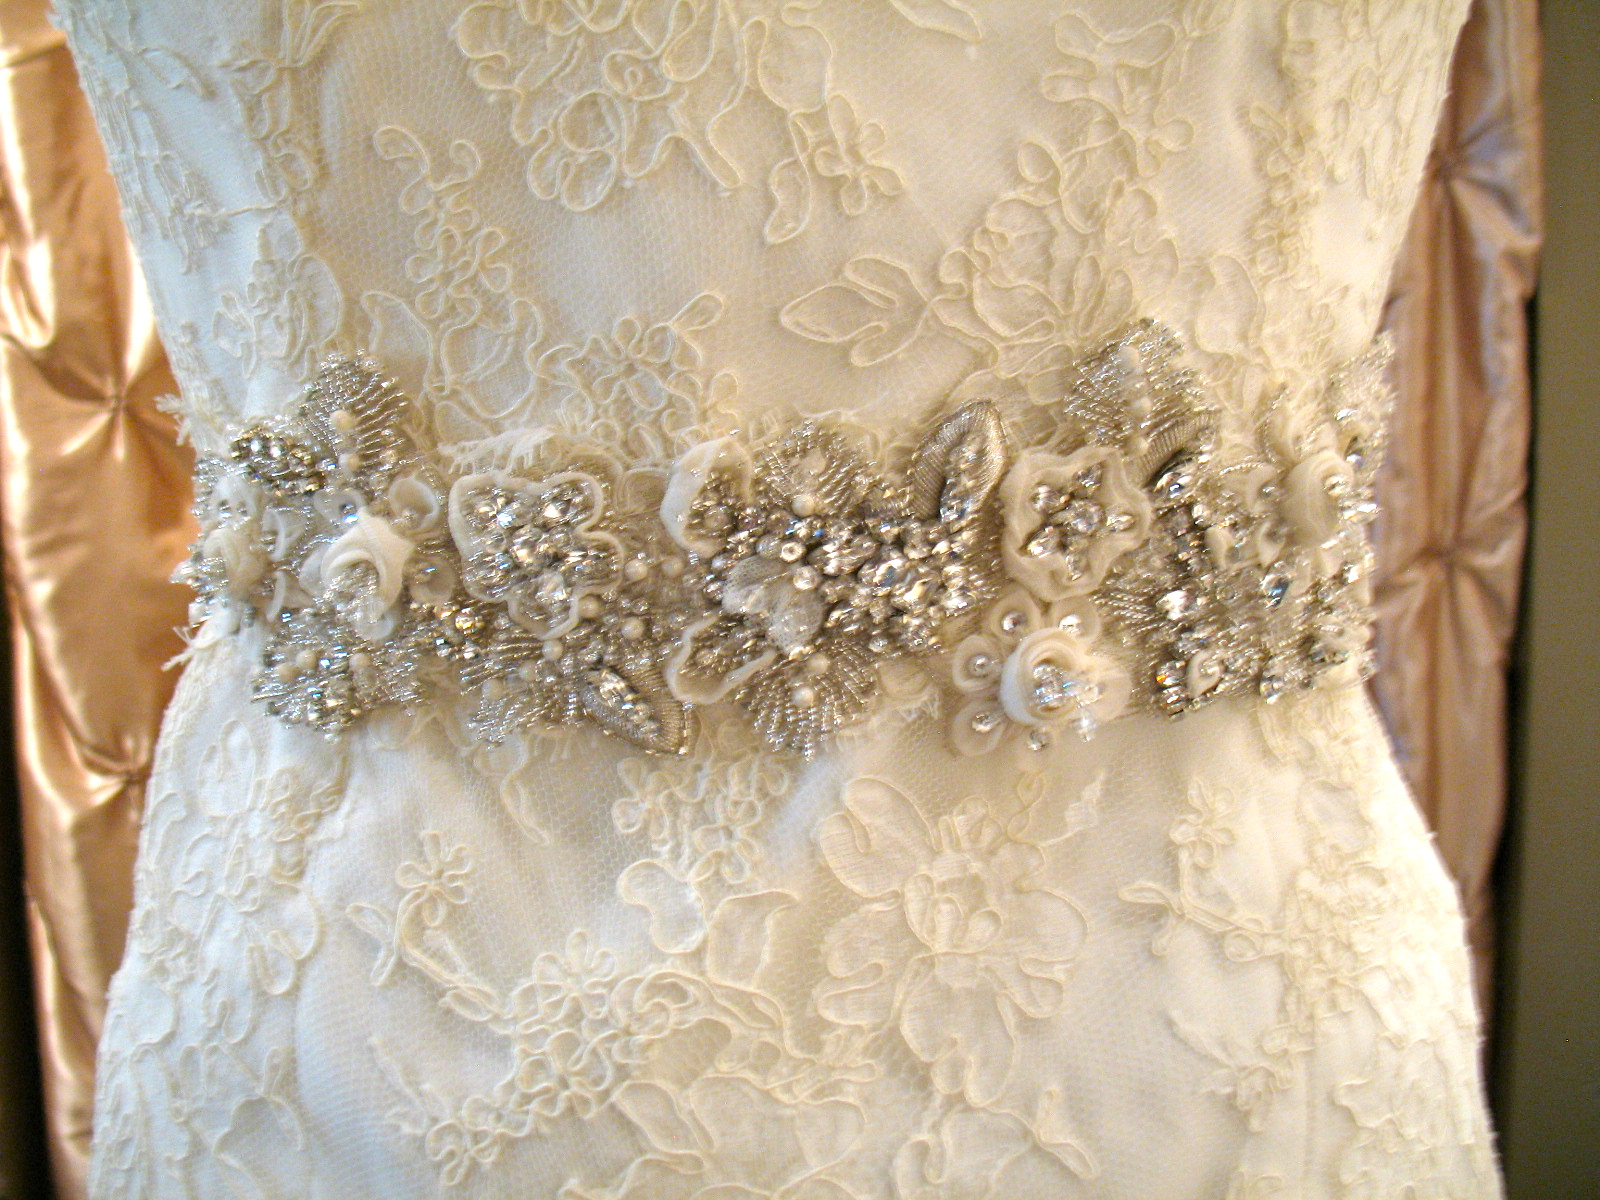 Beaded or Bejeweled - Badgley Mischka Sashes Are Here! — Little ...